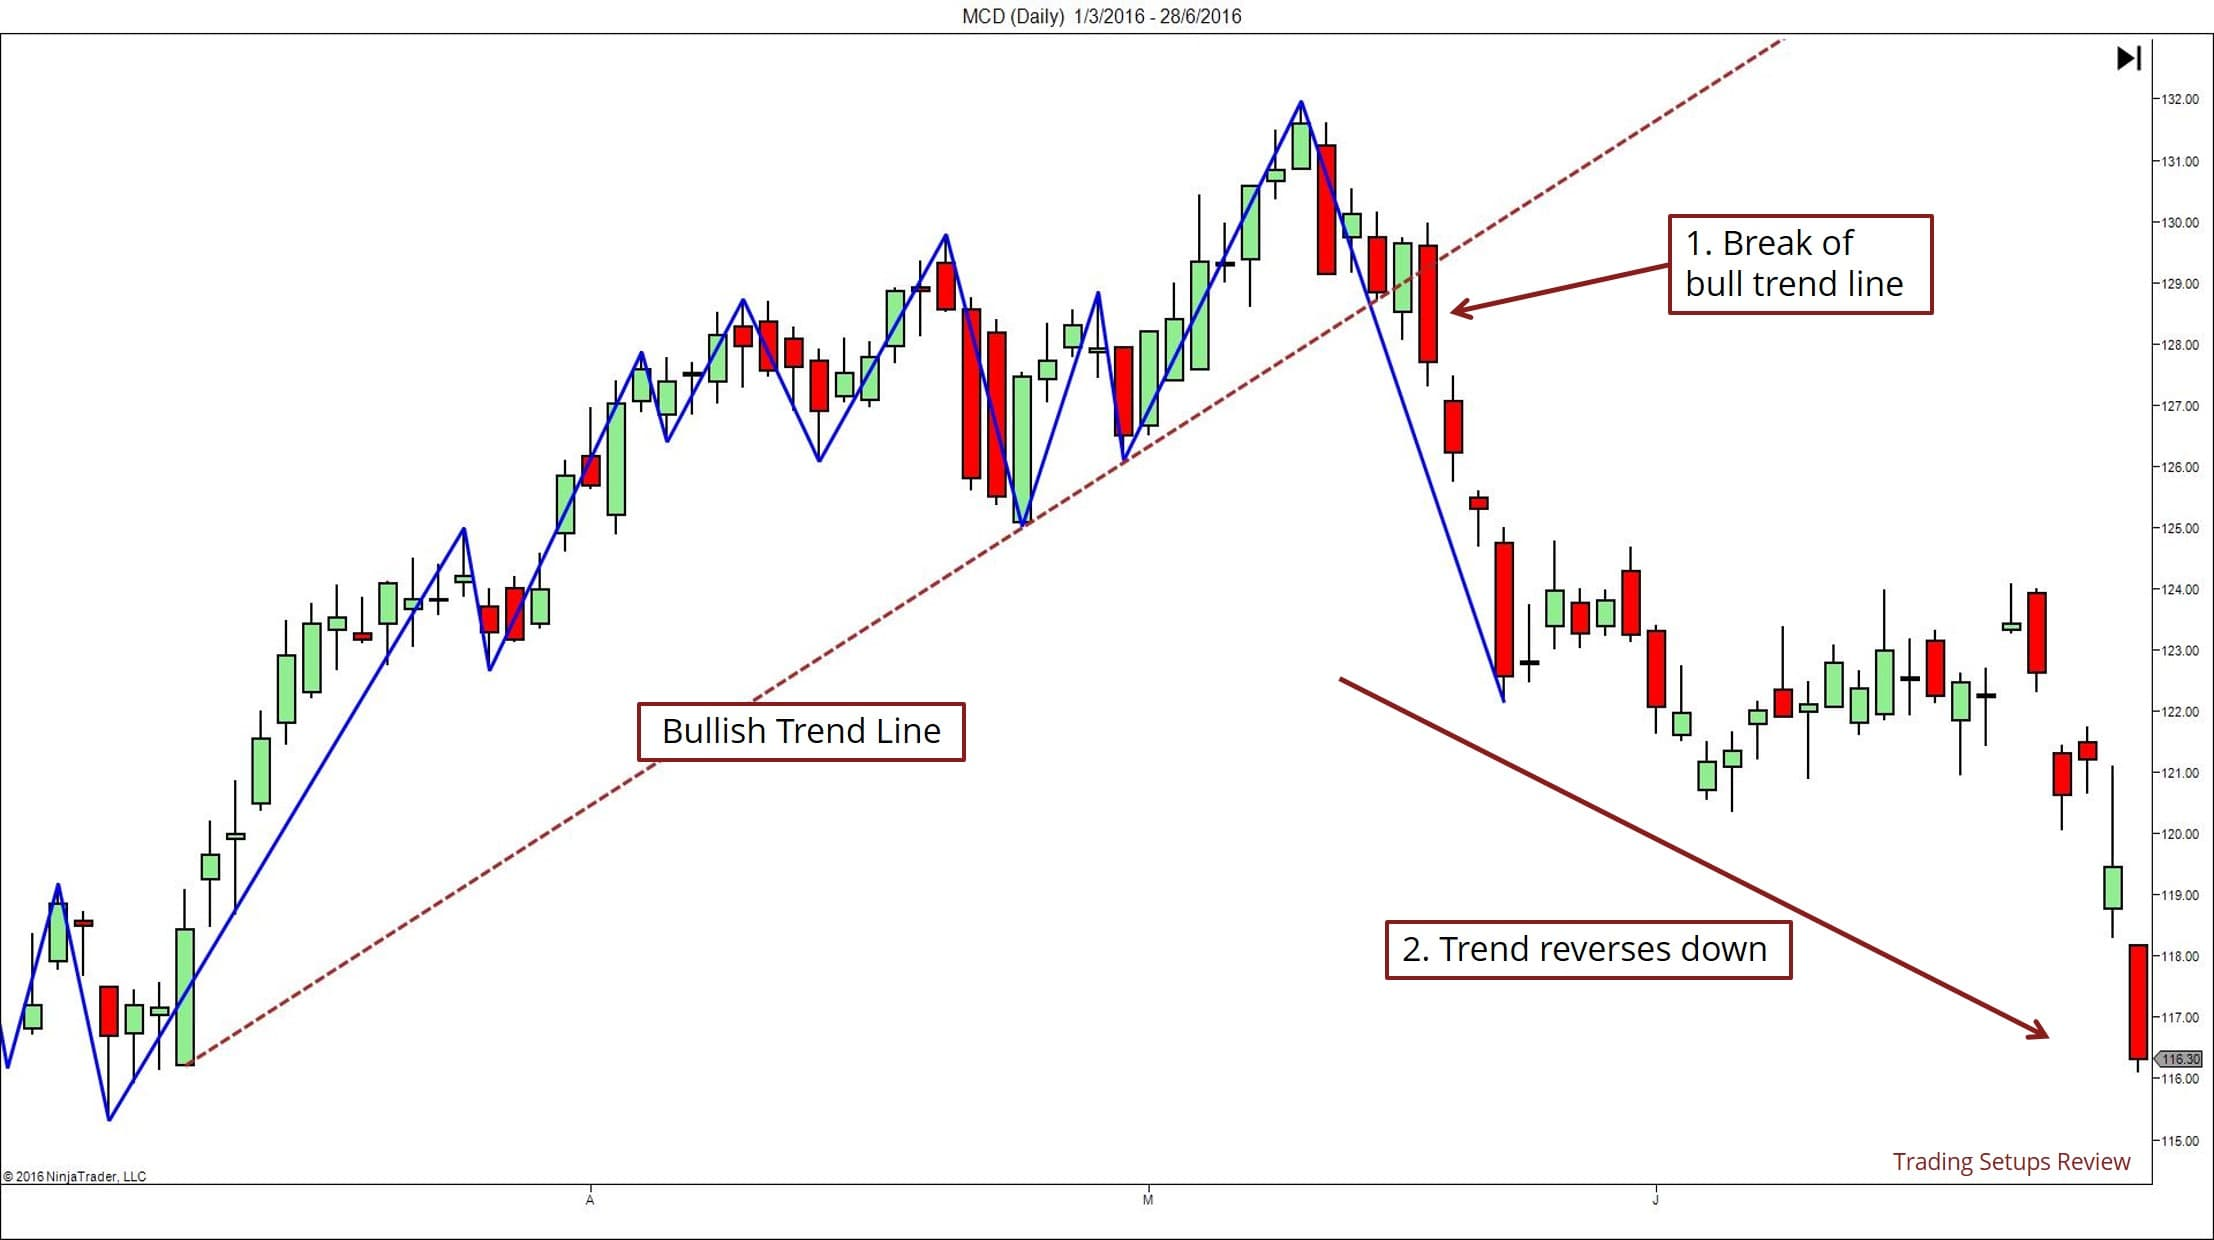 Trend Lines and Reversals